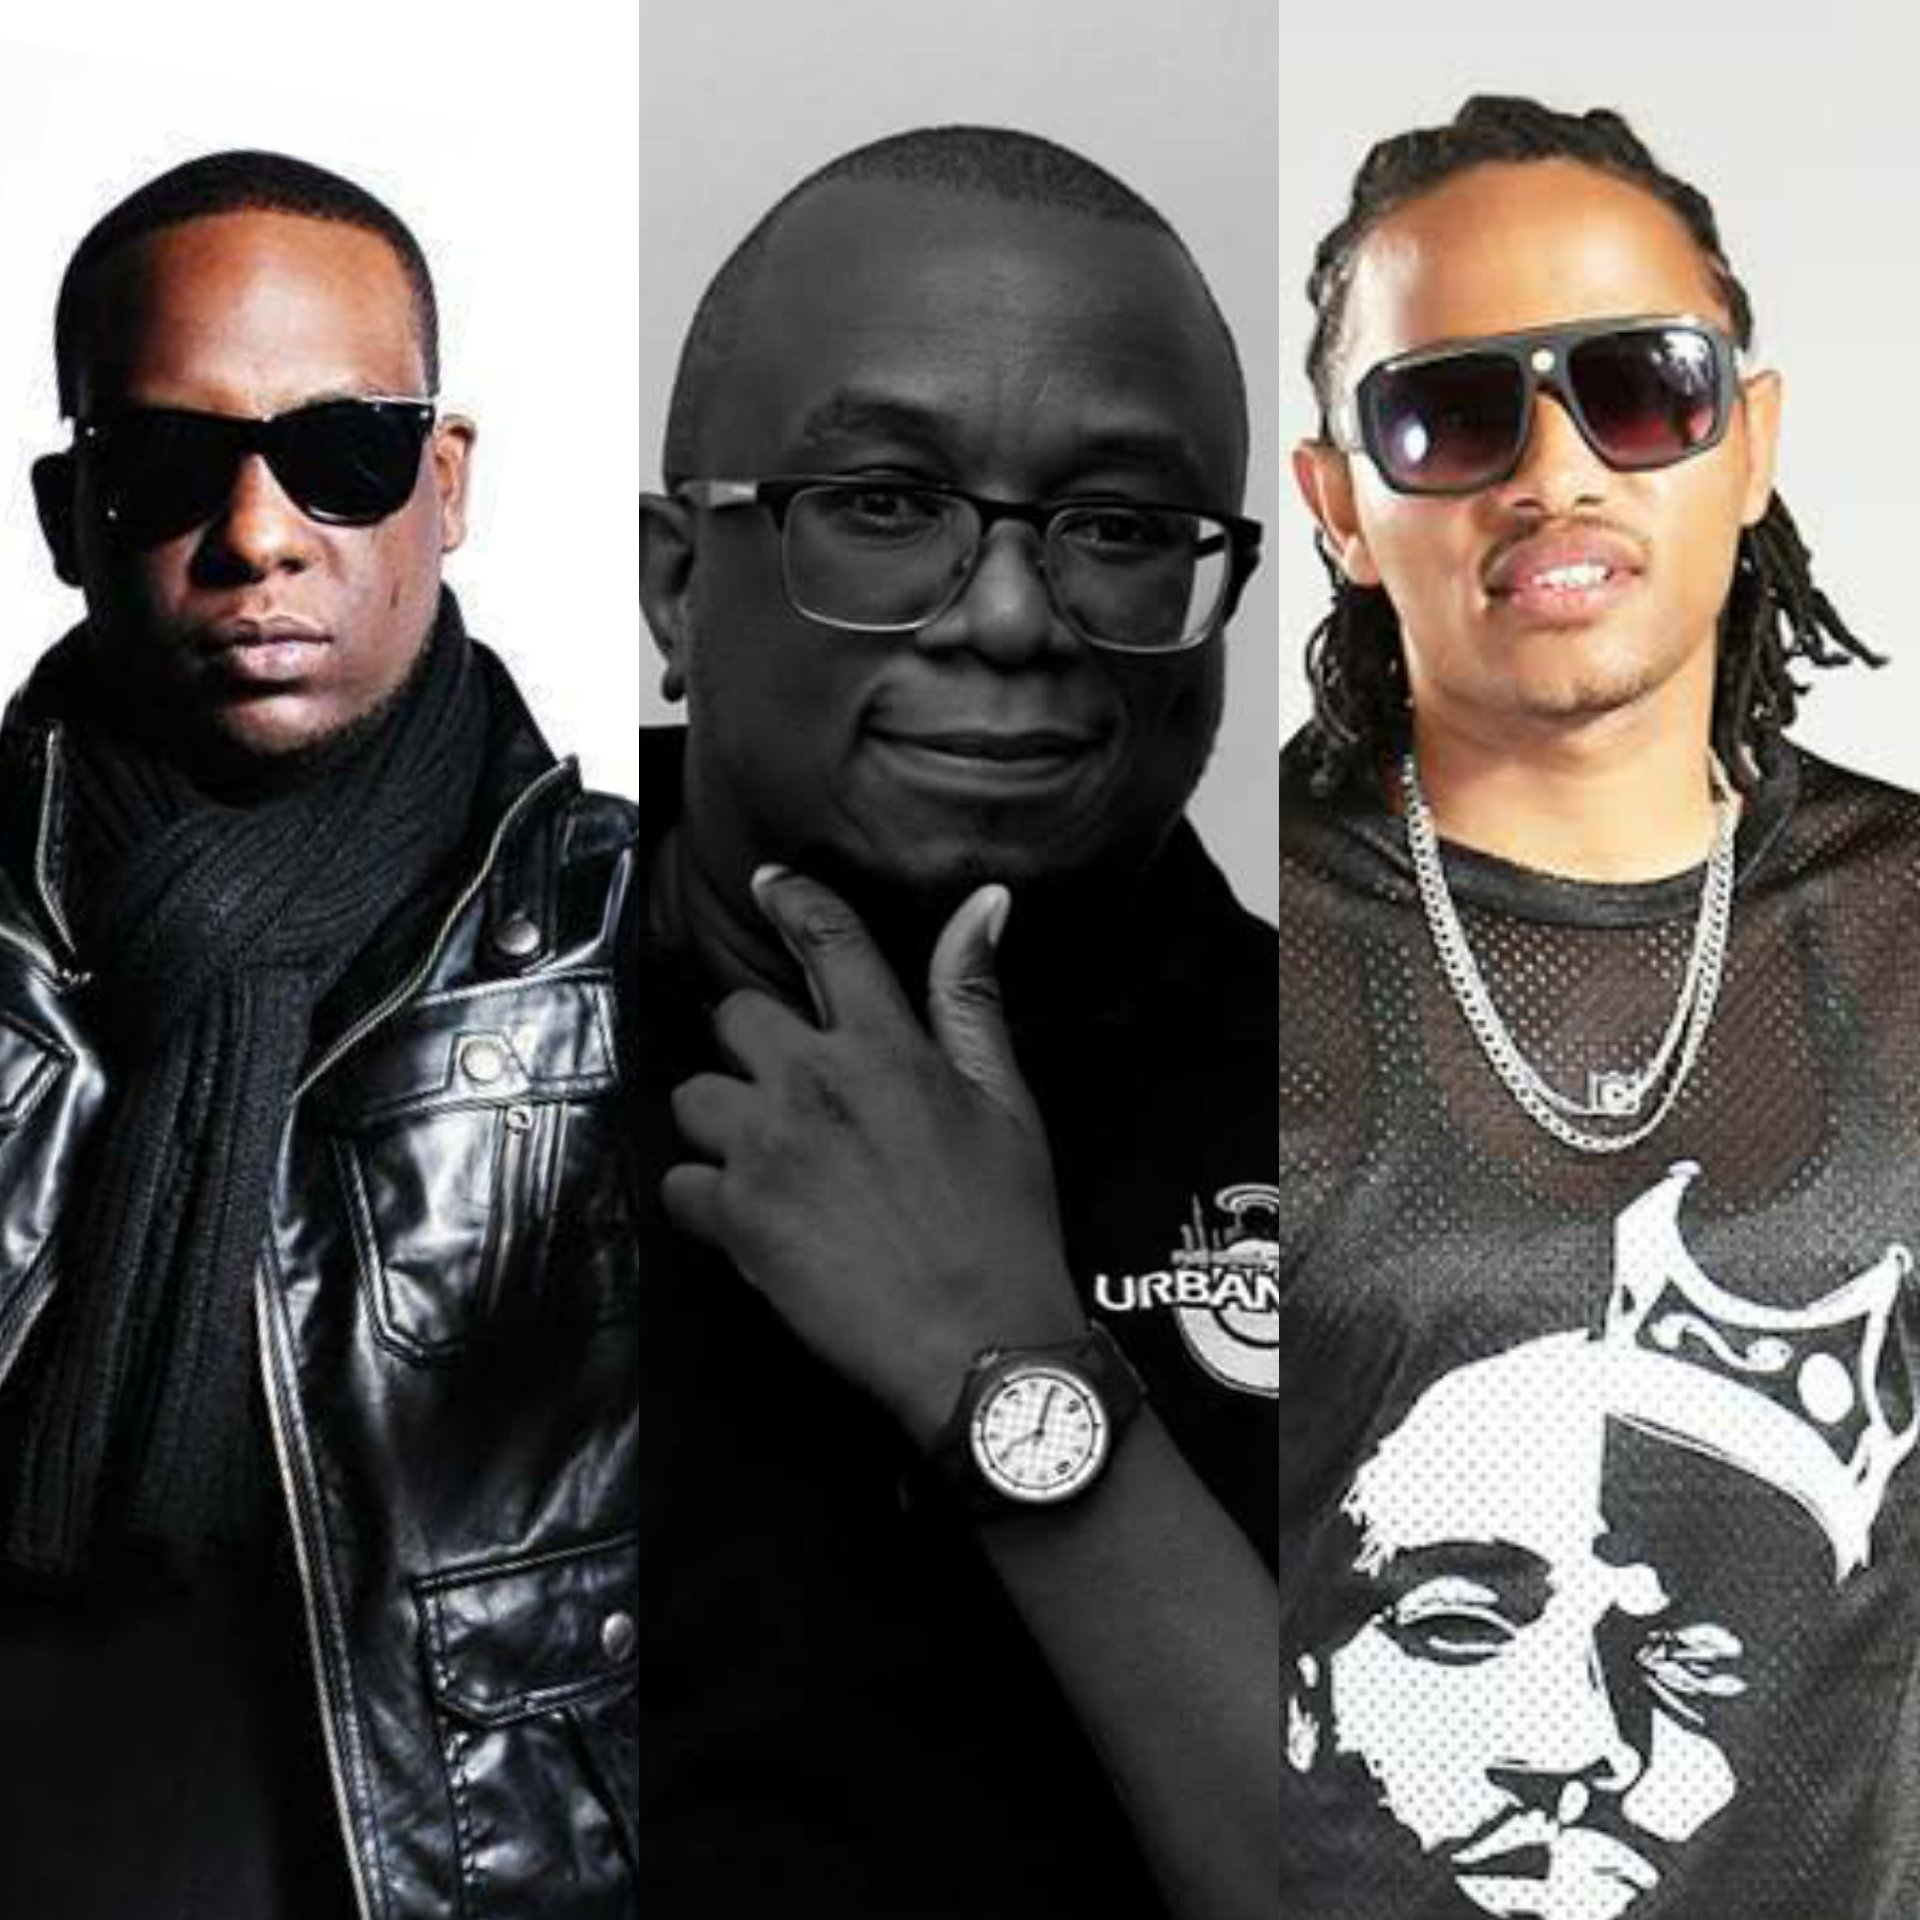 Triple Threat: 3 latest mixes from Kenyan DJs that we can't get enough of this week